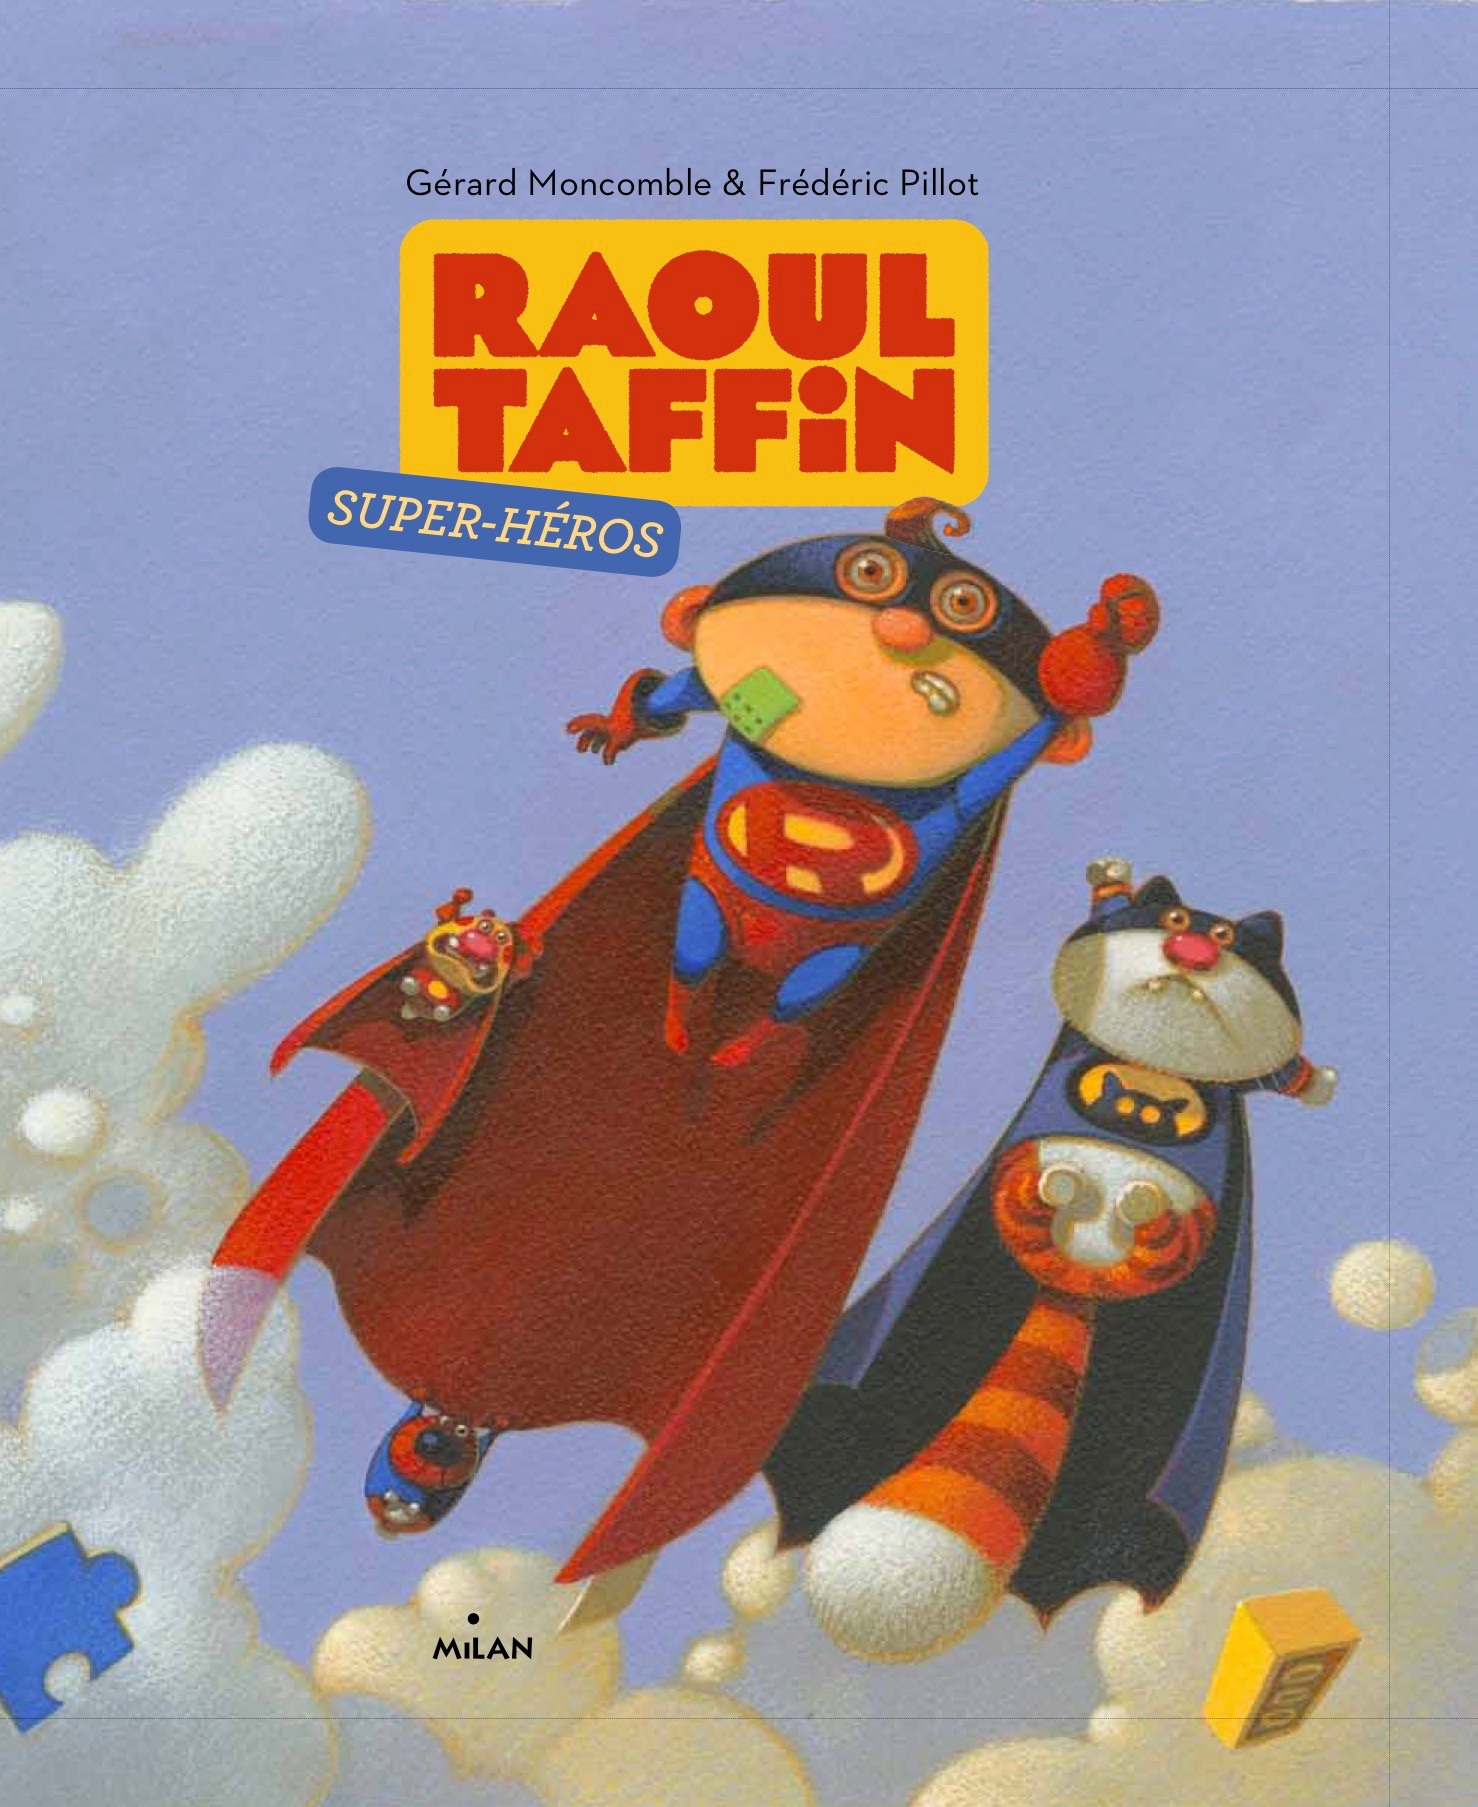 couverture_raoul_taffin_super_héros